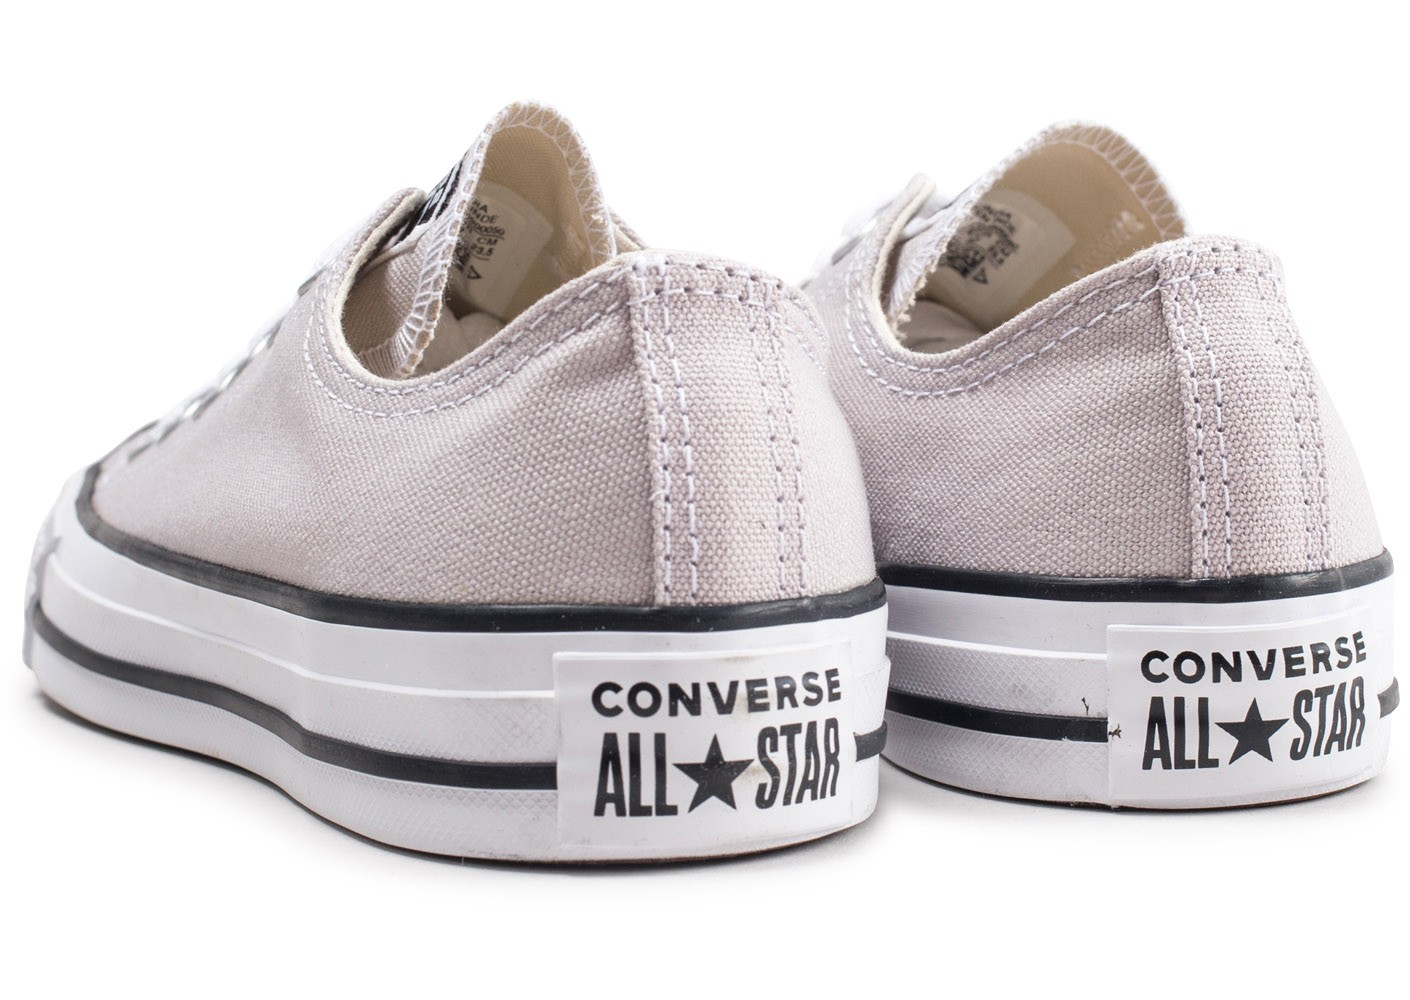 Star Chuck Taylor clair All Chaussures Converse femme Low beige 5S4ARc3qjL